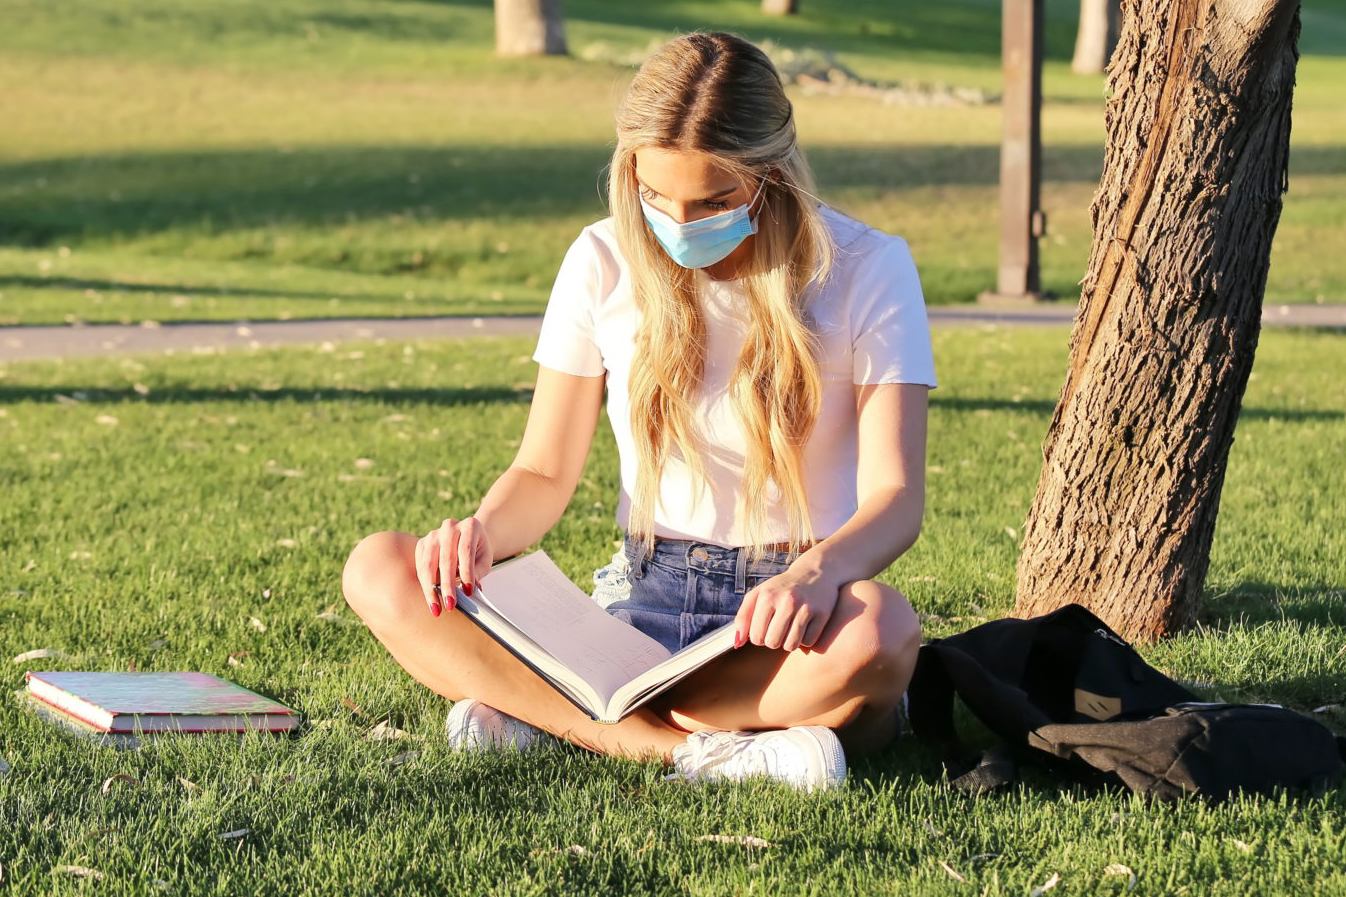 Student outside on campus wearing a mask while reading